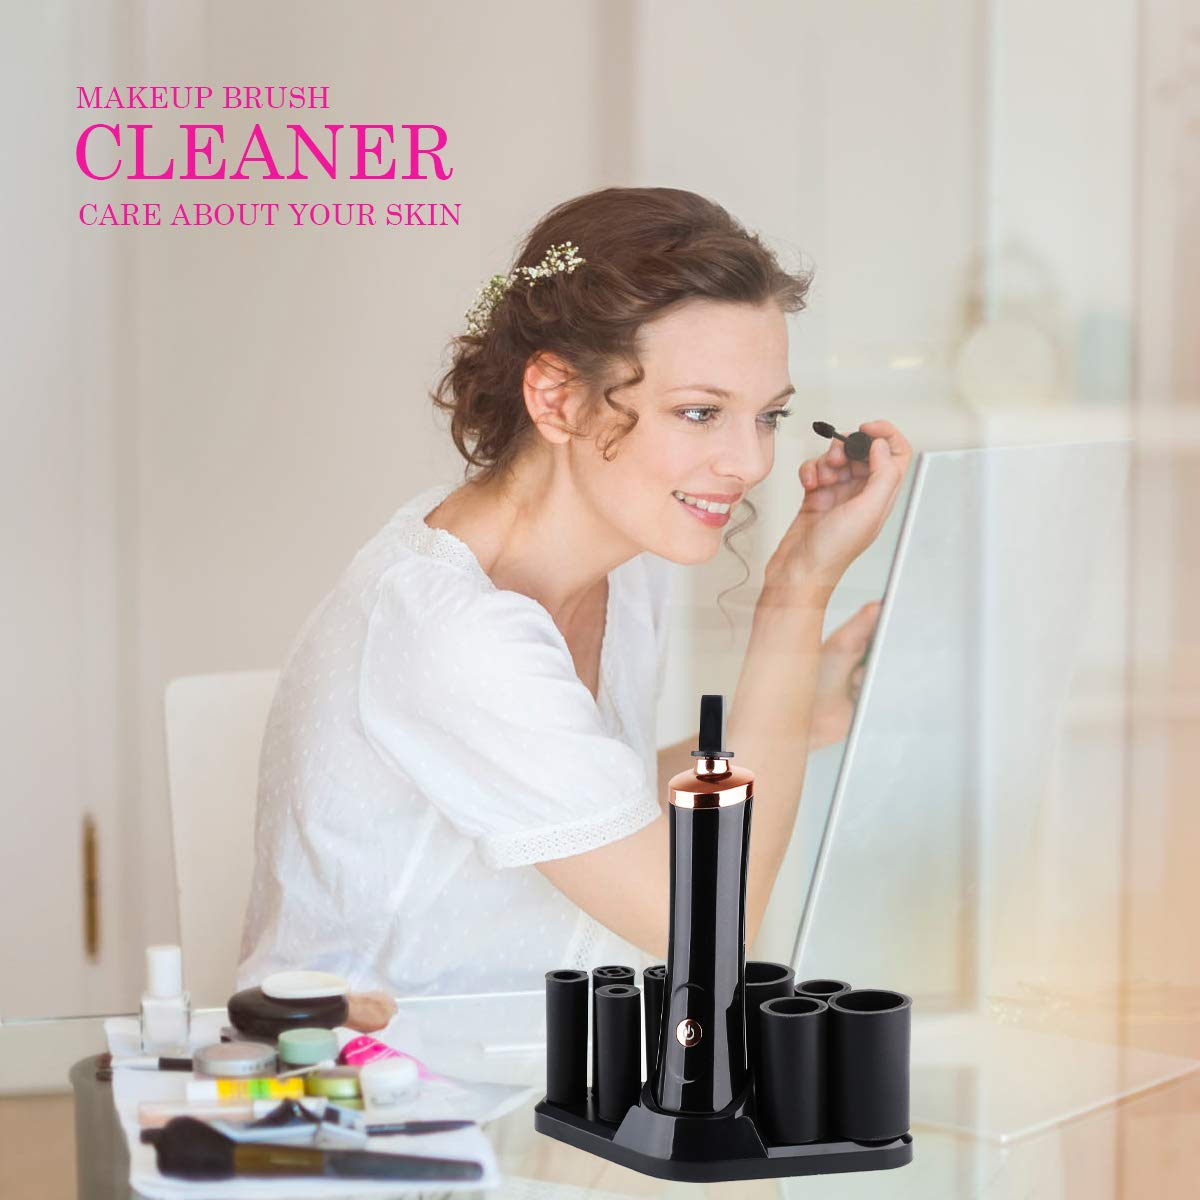 Makeup Brush Cleaner, Electric Automatic Cosmetic Brushes Cleaner and Dryer Machine Deep Cleans and Dries All Makeup Brushes in Seconds